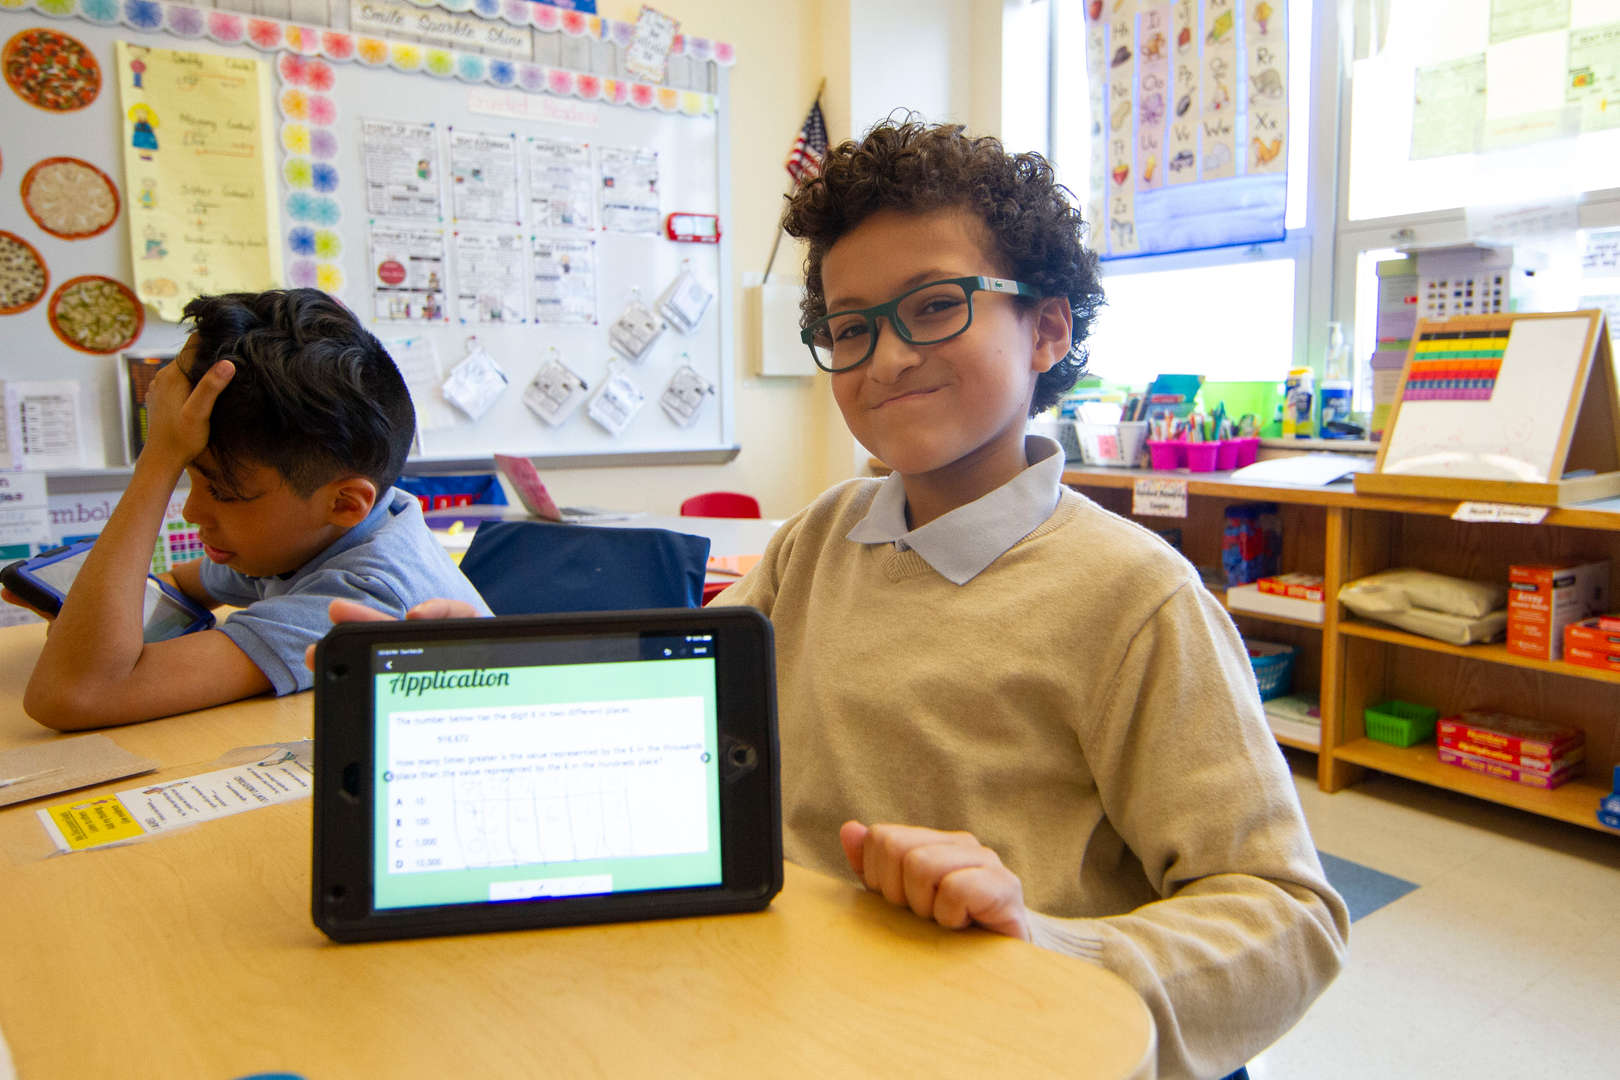 Boy showing iPad screen